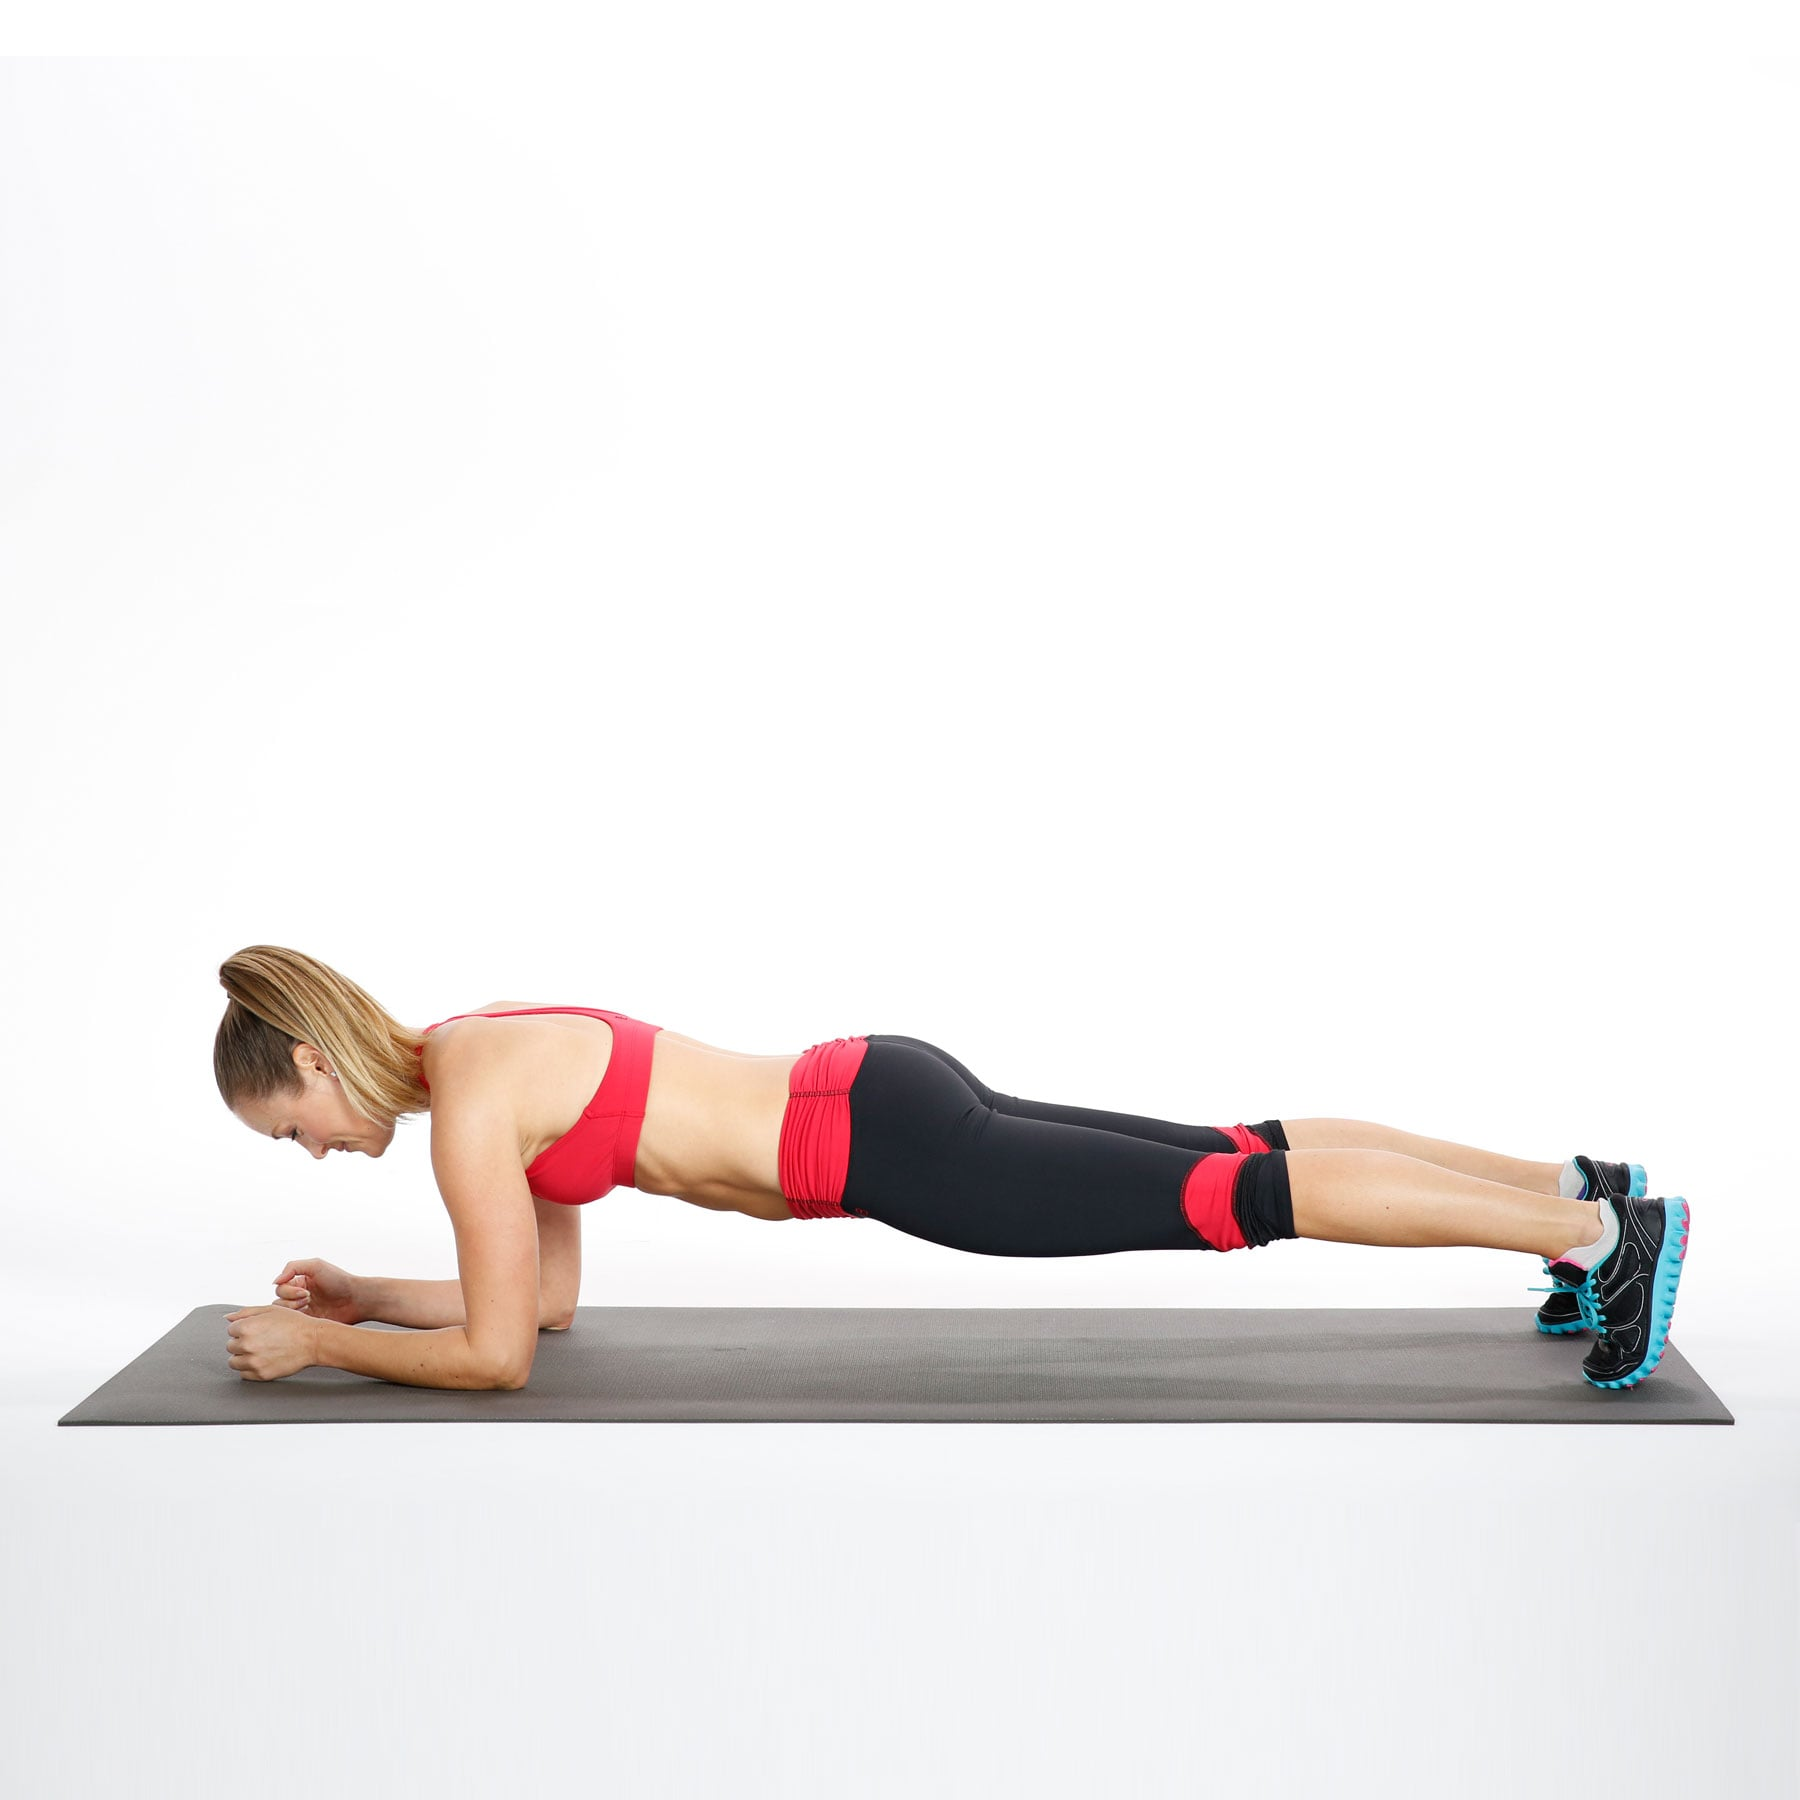 Elbow Plank With Hip Dips These Are The 43 Bodyweight Exercises Women Need For Strong Chiseled Abs Popsugar Fitness Photo 17 Hip dips aren't a new dance move, but they are the latest body positivity trend on instagram. elbow plank with hip dips these are